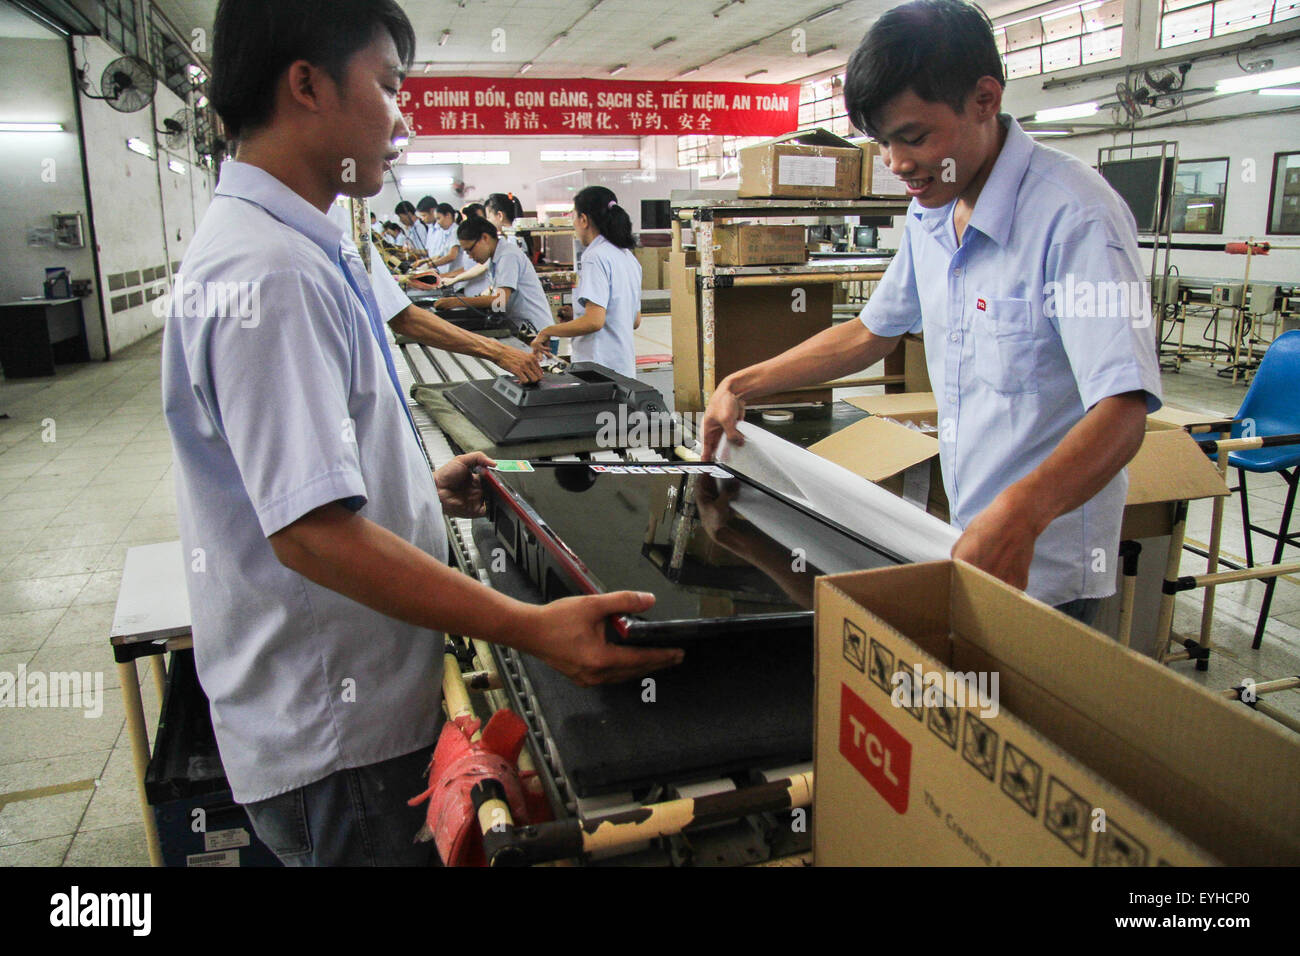 (150730) -- HO CHI MINH CITY, July 30, 2015 (Xinhua) -- File Photo taken on July 10, 2015 shows people work at the - Stock Image